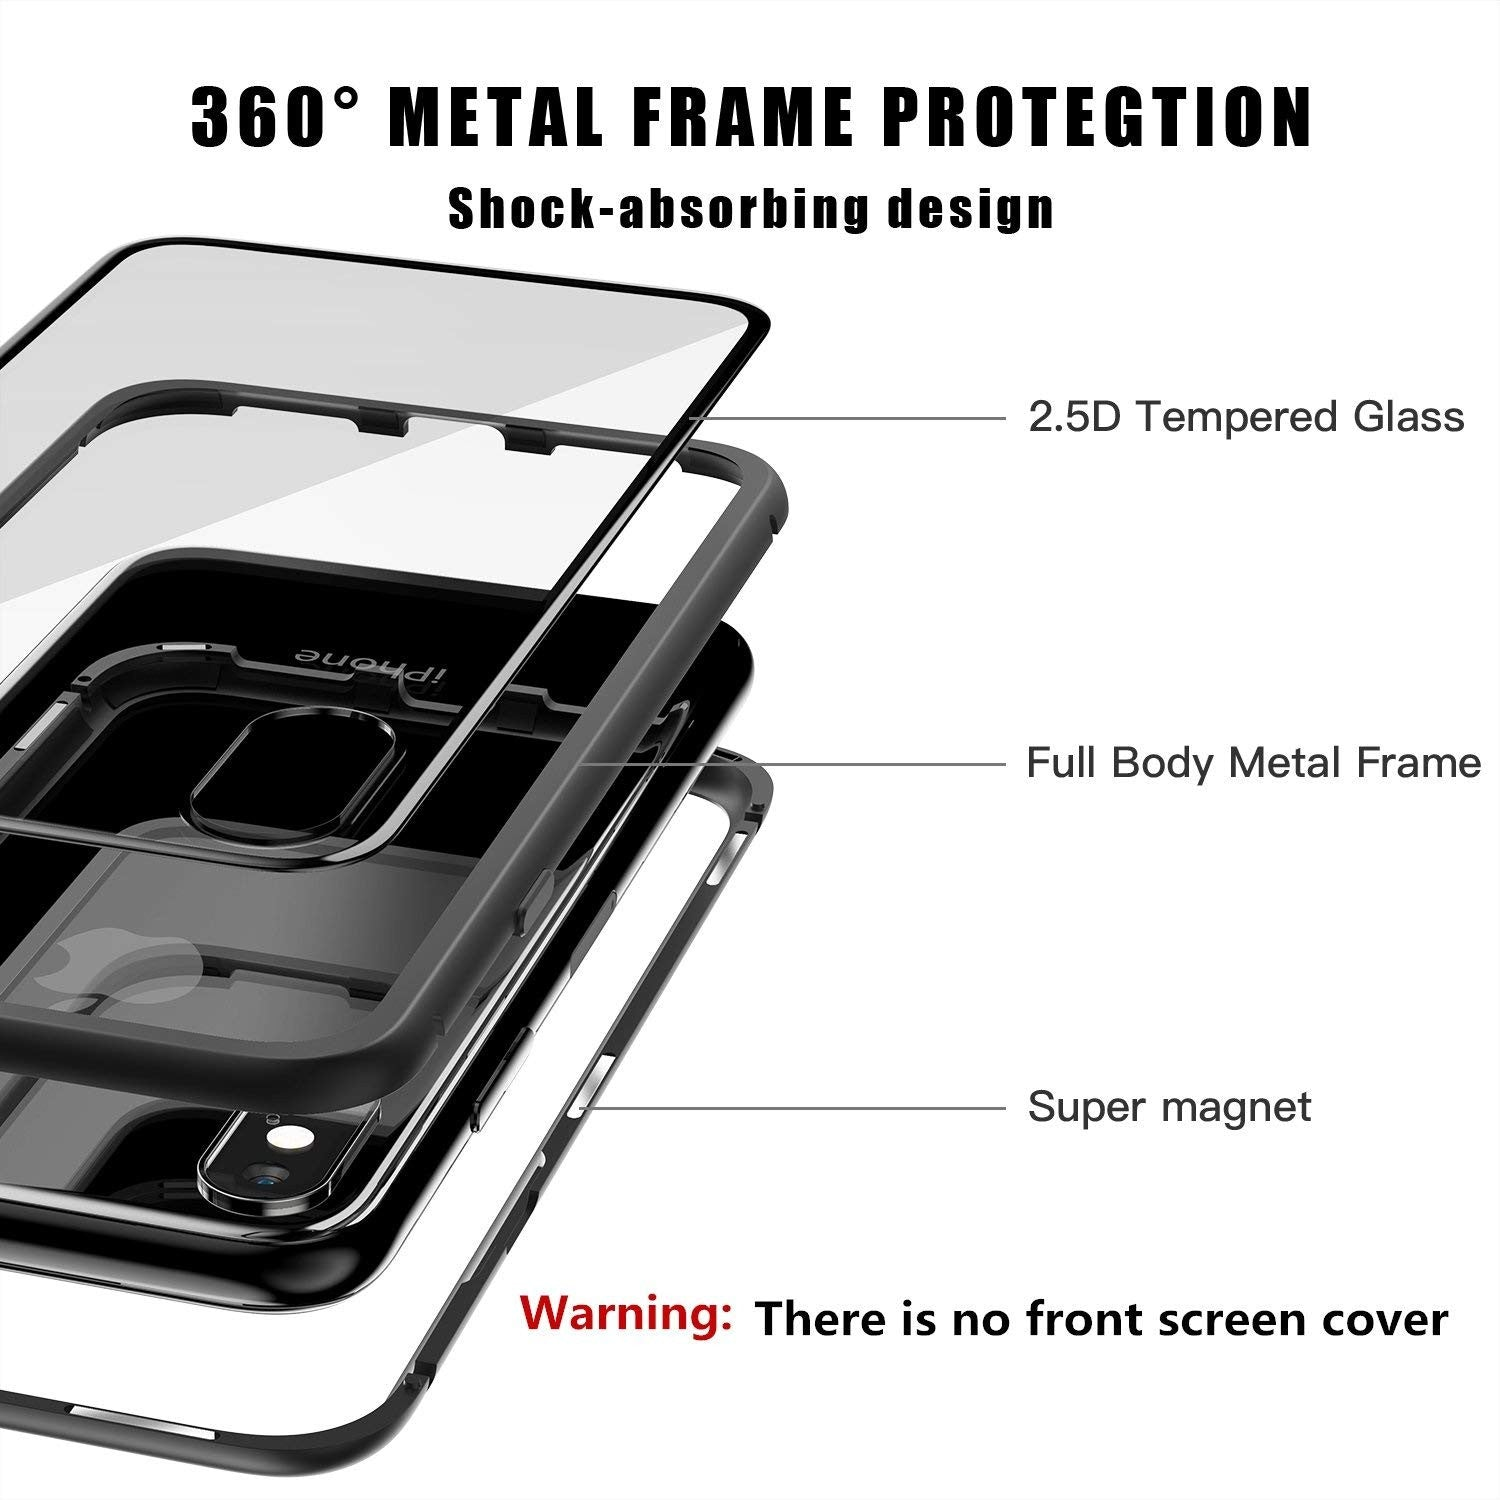 984ca9f55c2 ... iPhone X Case, Magnetic Adsorption Case Ultra Slim Metal Frame Tempered  Glass with Built- ...